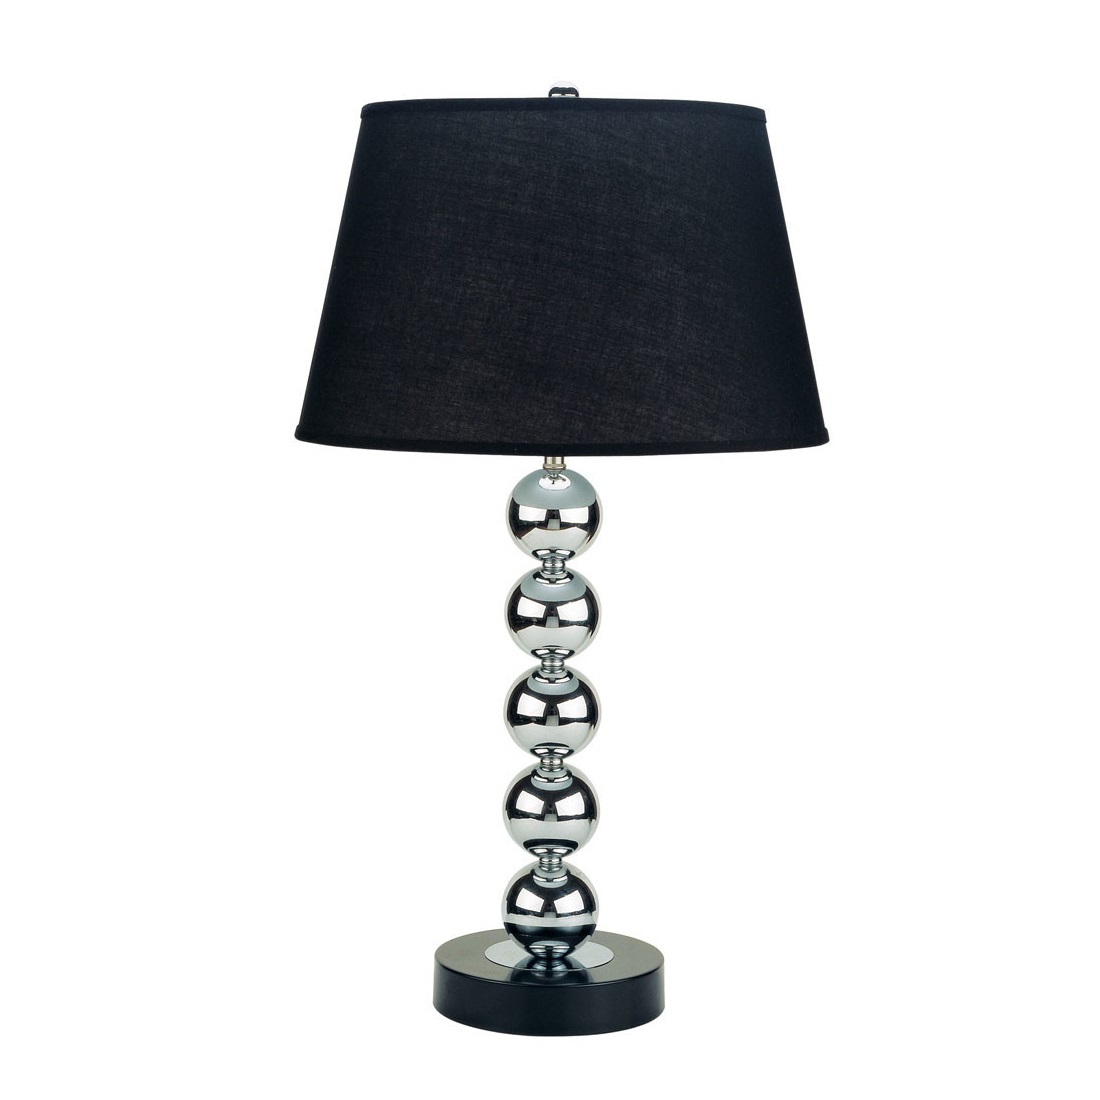 Ore metal modern table lamp with empire shade l brilliant for Modern contemporary table lamps